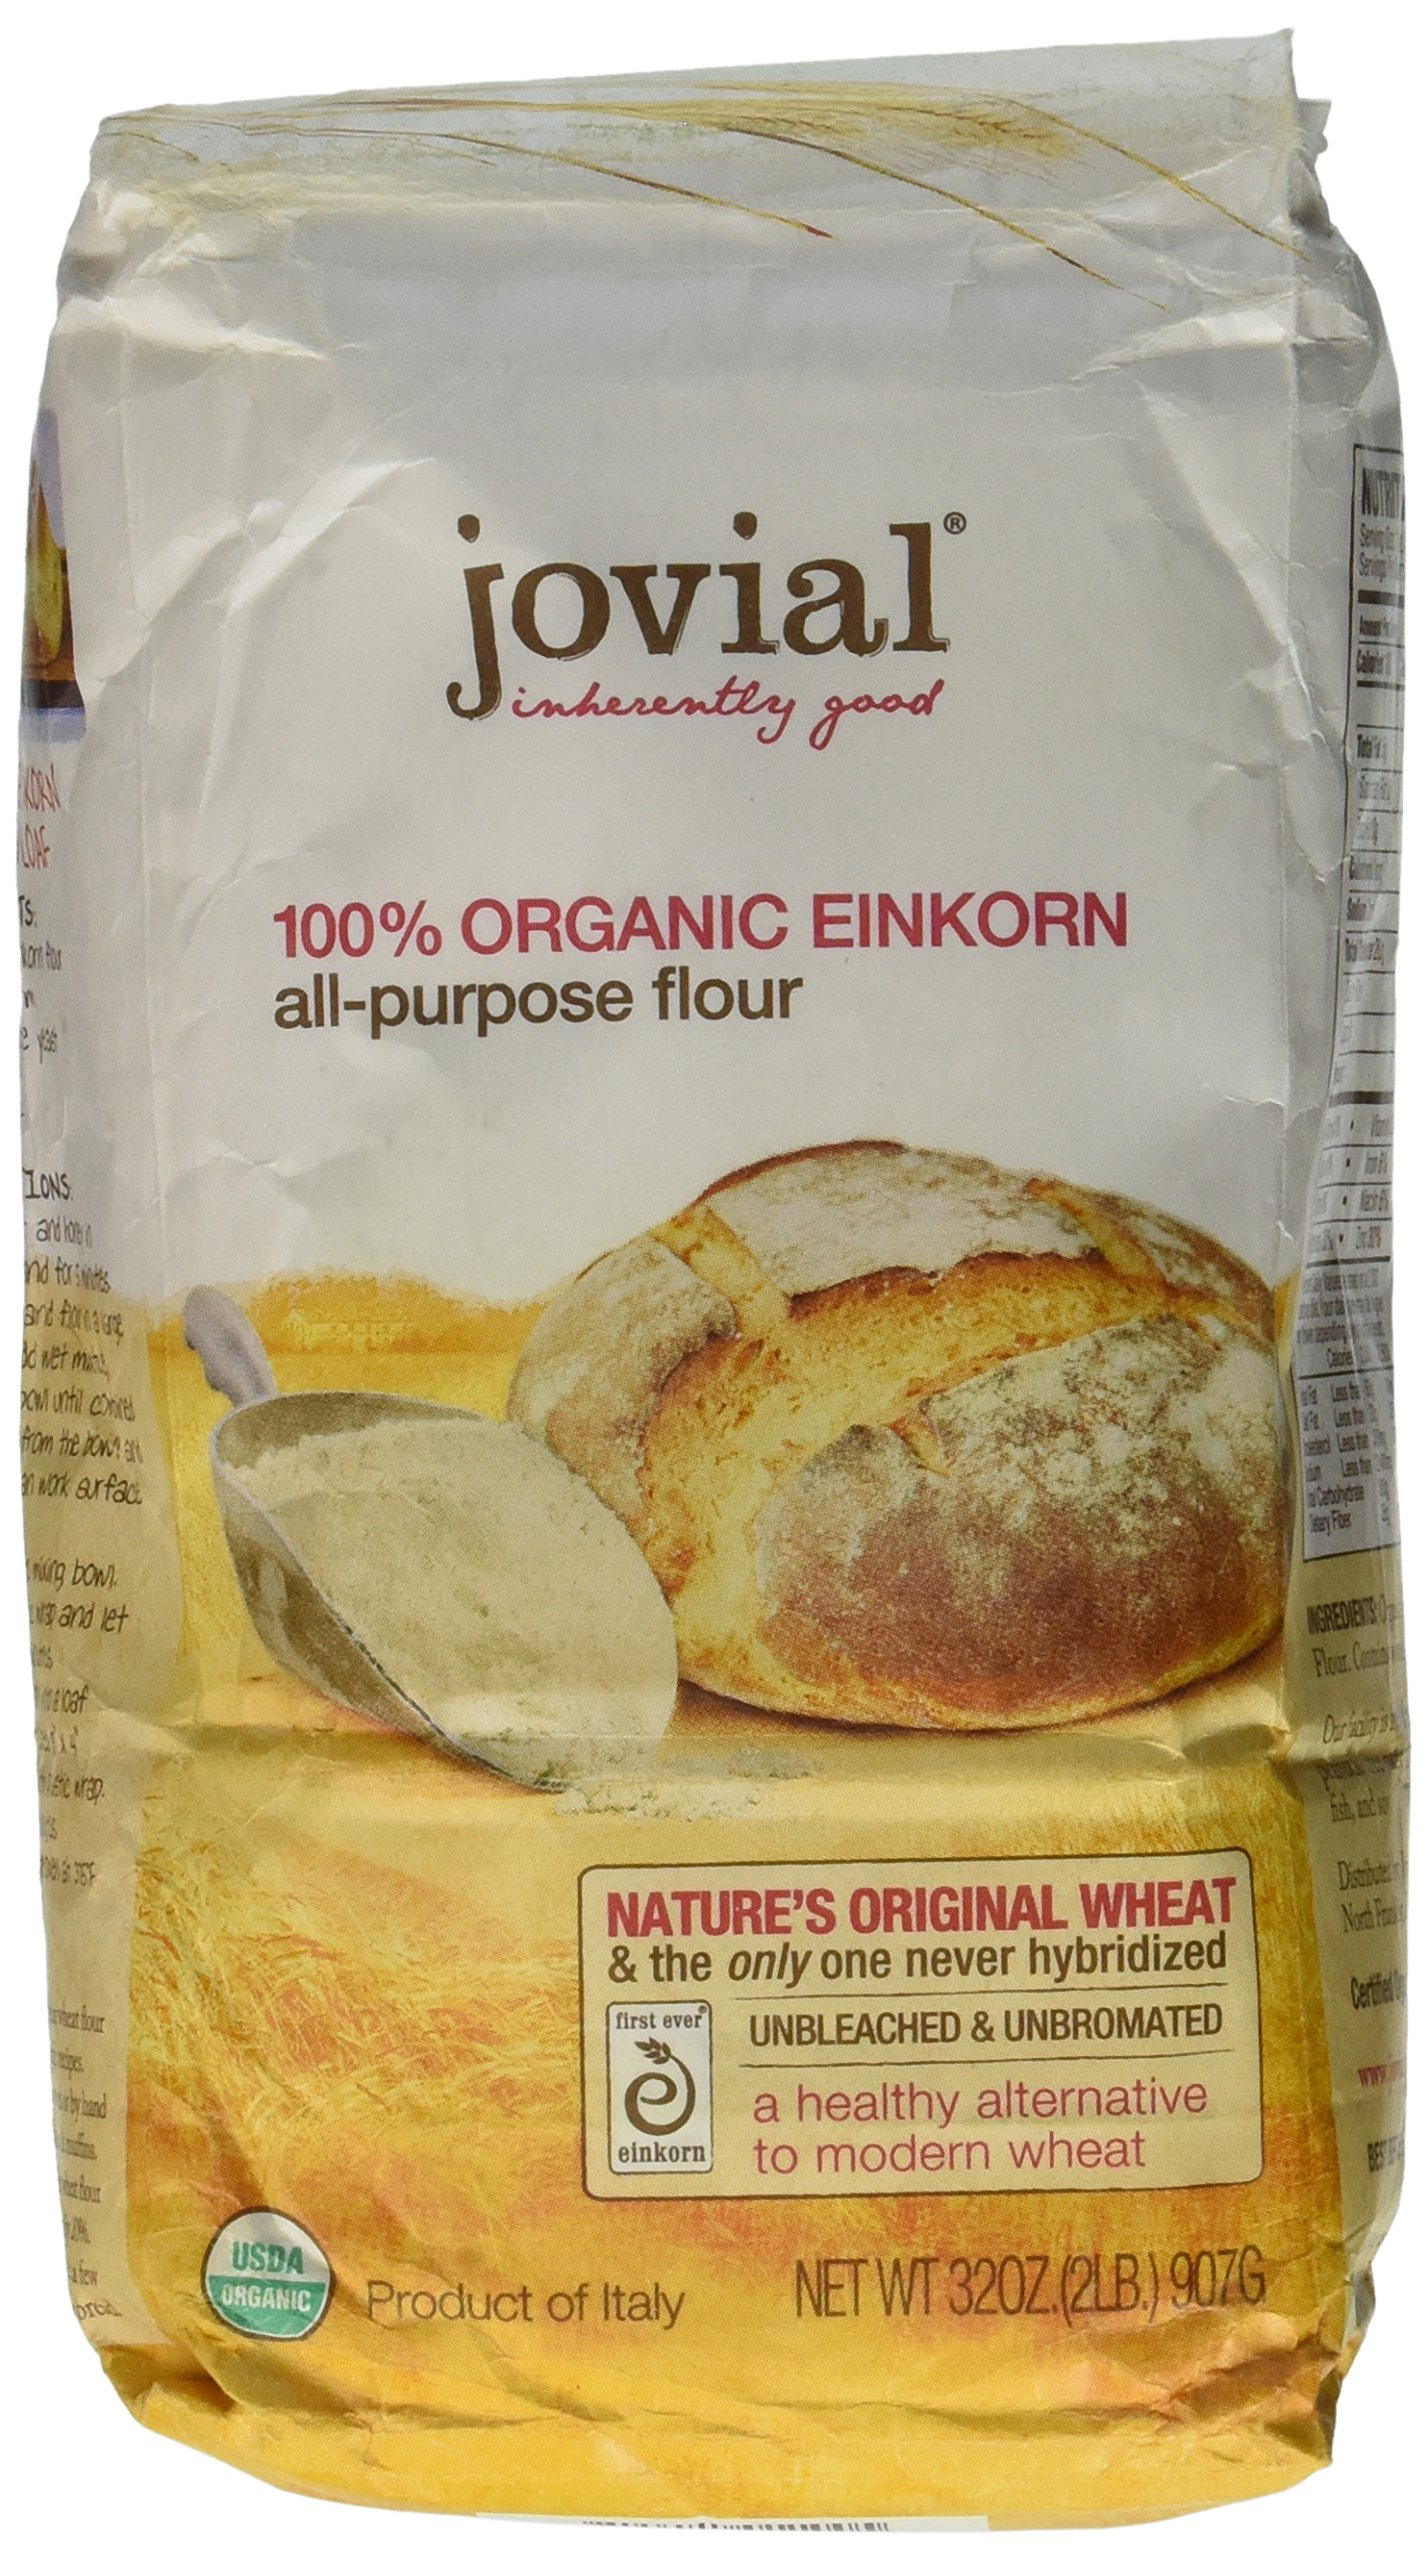 Jovial Organic Einkorn All Purpose Flour 32oz (Pack of 5) by Jovial